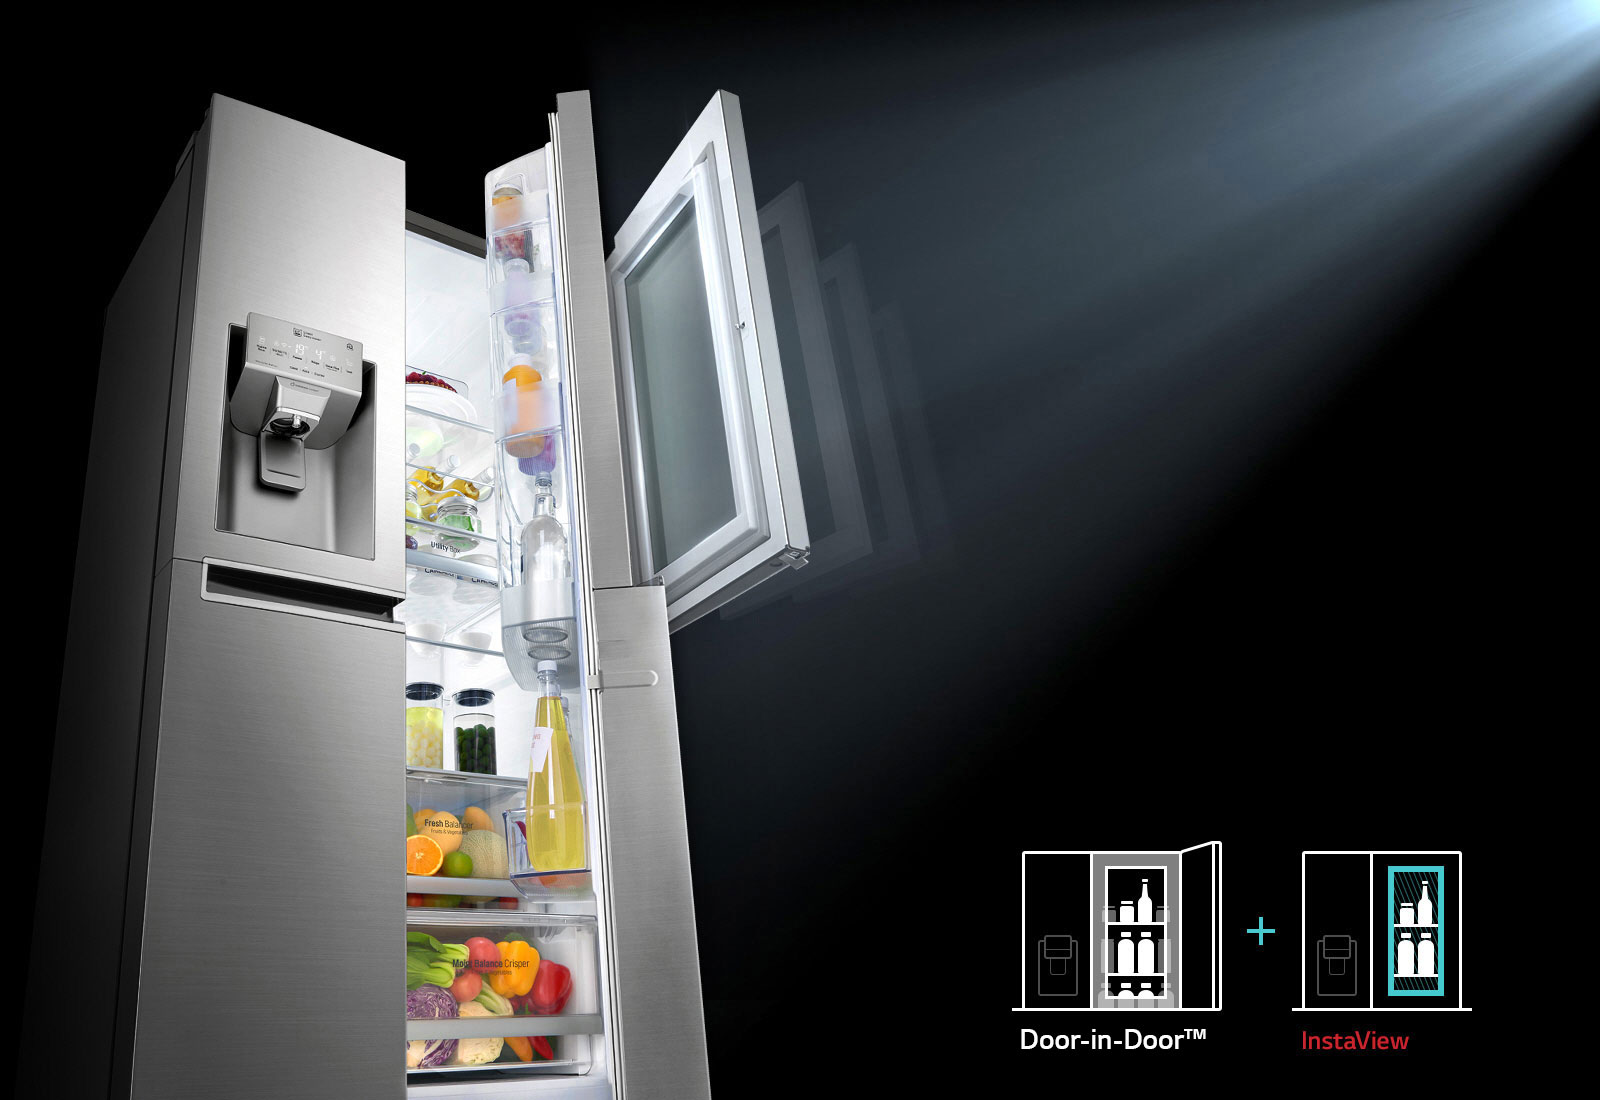 GS-X6018MT-side-by-side-refrigerators_The-Next-Generation-30112019-D